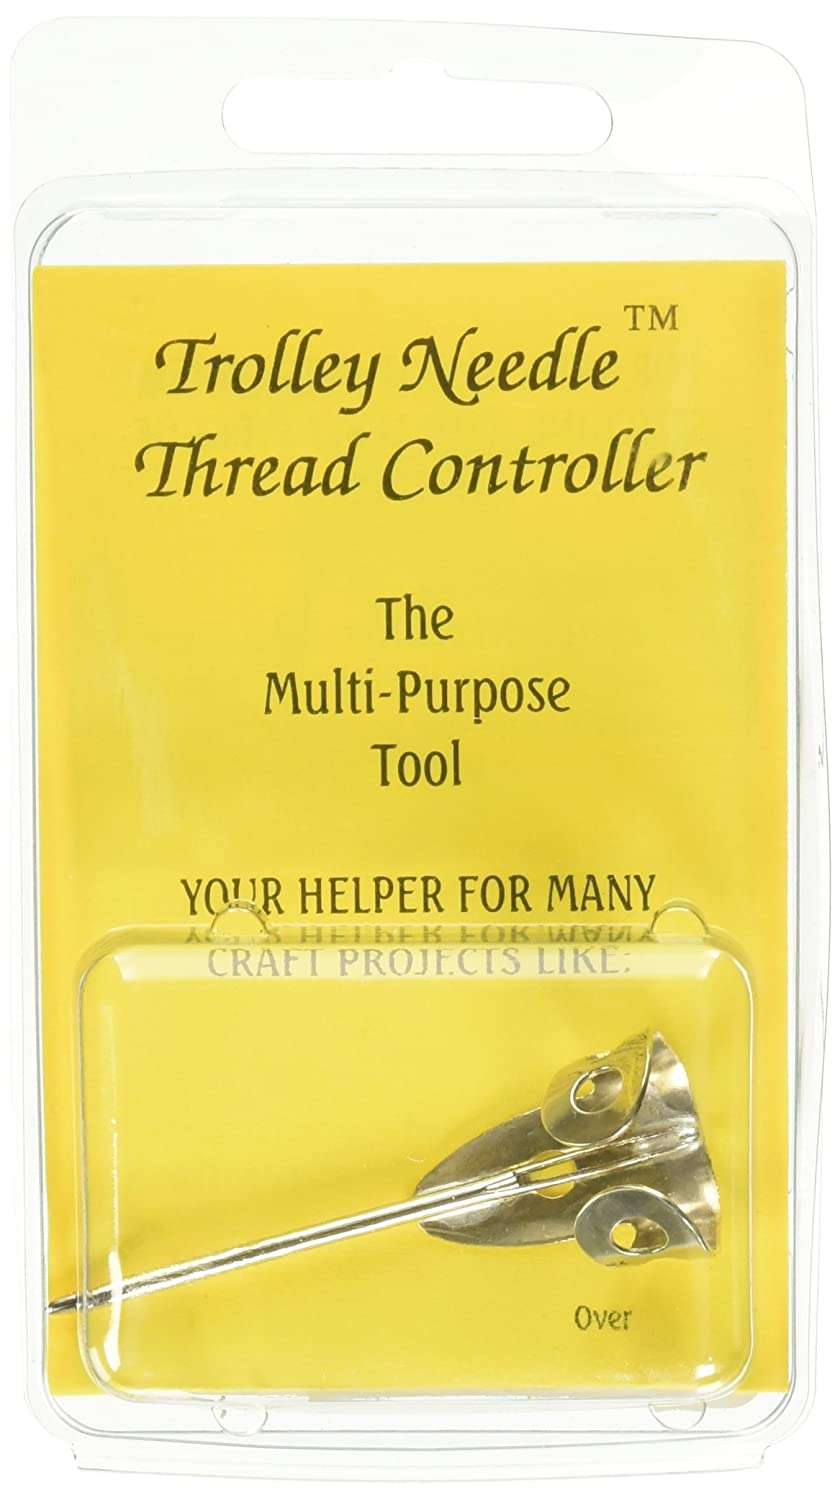 Yarn Works Trolley Needle Thread Controller